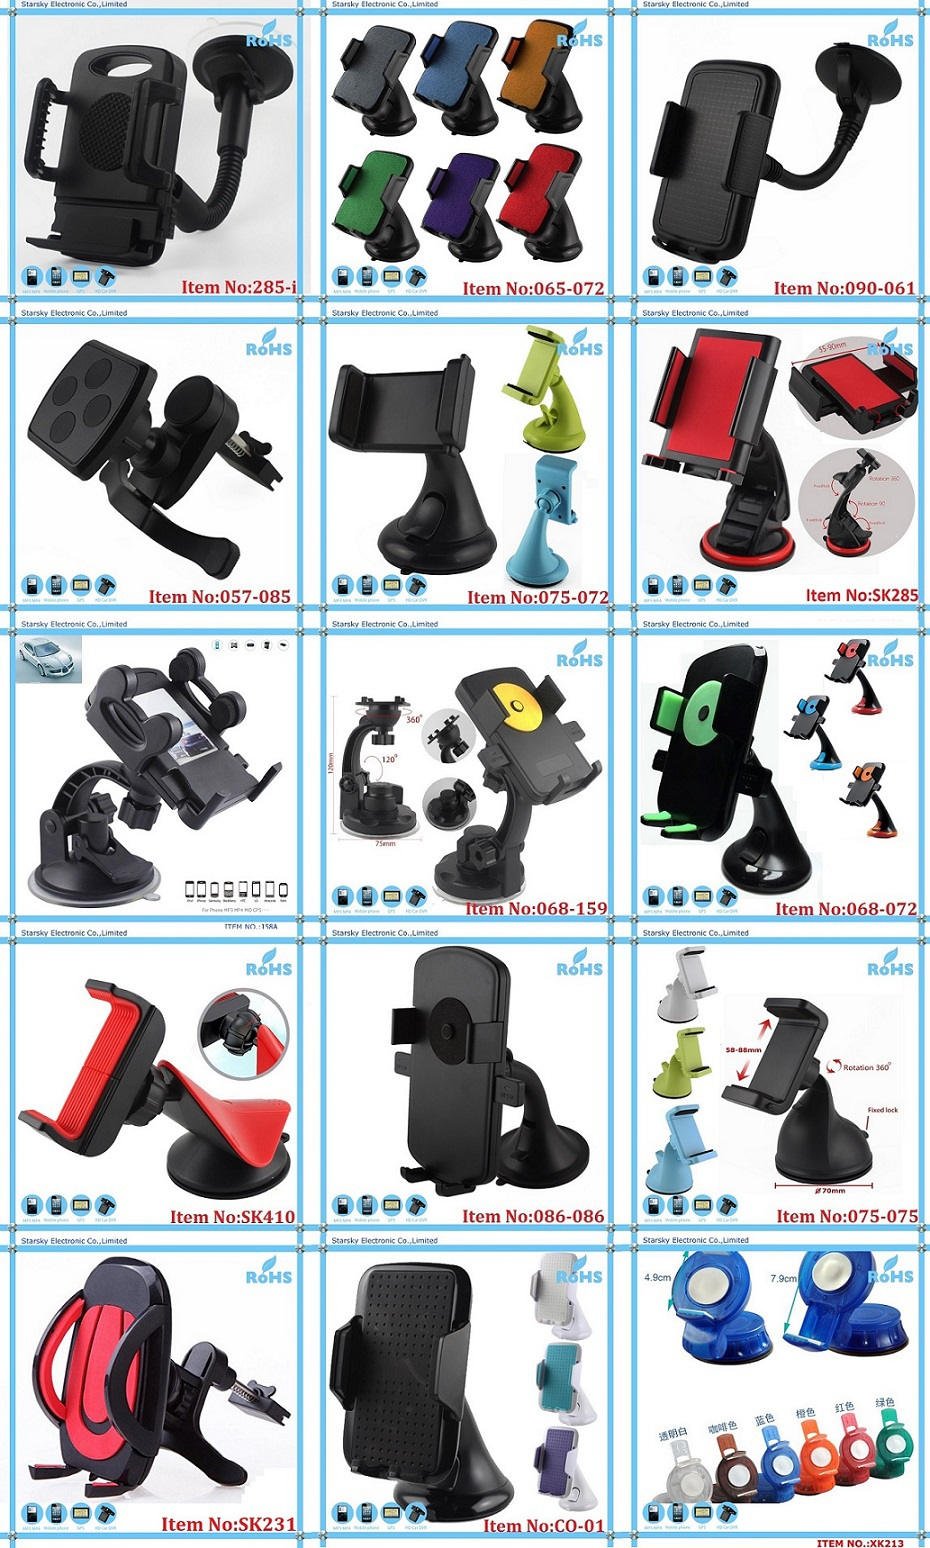 SK238# car mount kit 3in1 windshield mount +air vent mount for mobile phone holder car mount car phone holder